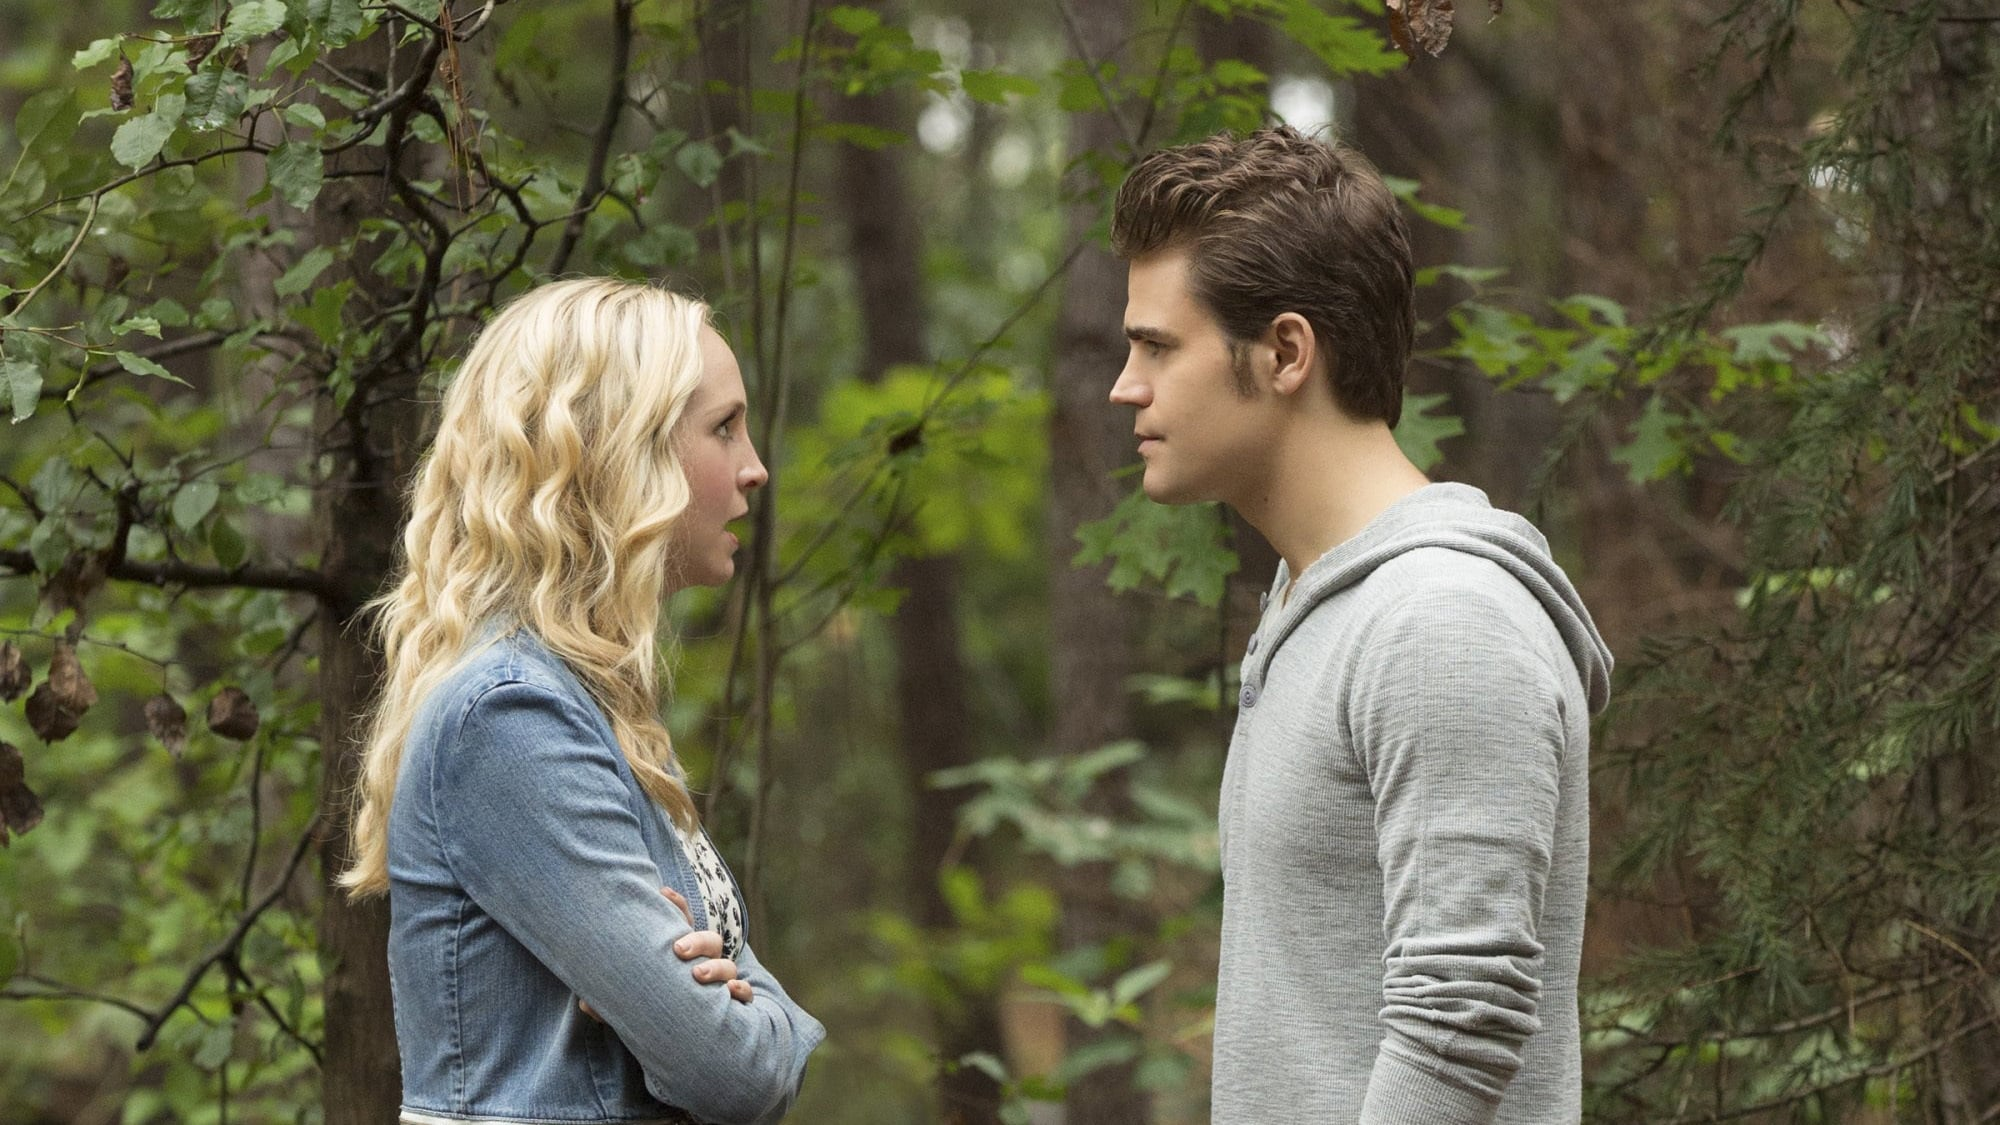 The Vampire Diaries - Season 6 Episode 6 : The More You Ignore Me, The Closer I Get (1970)